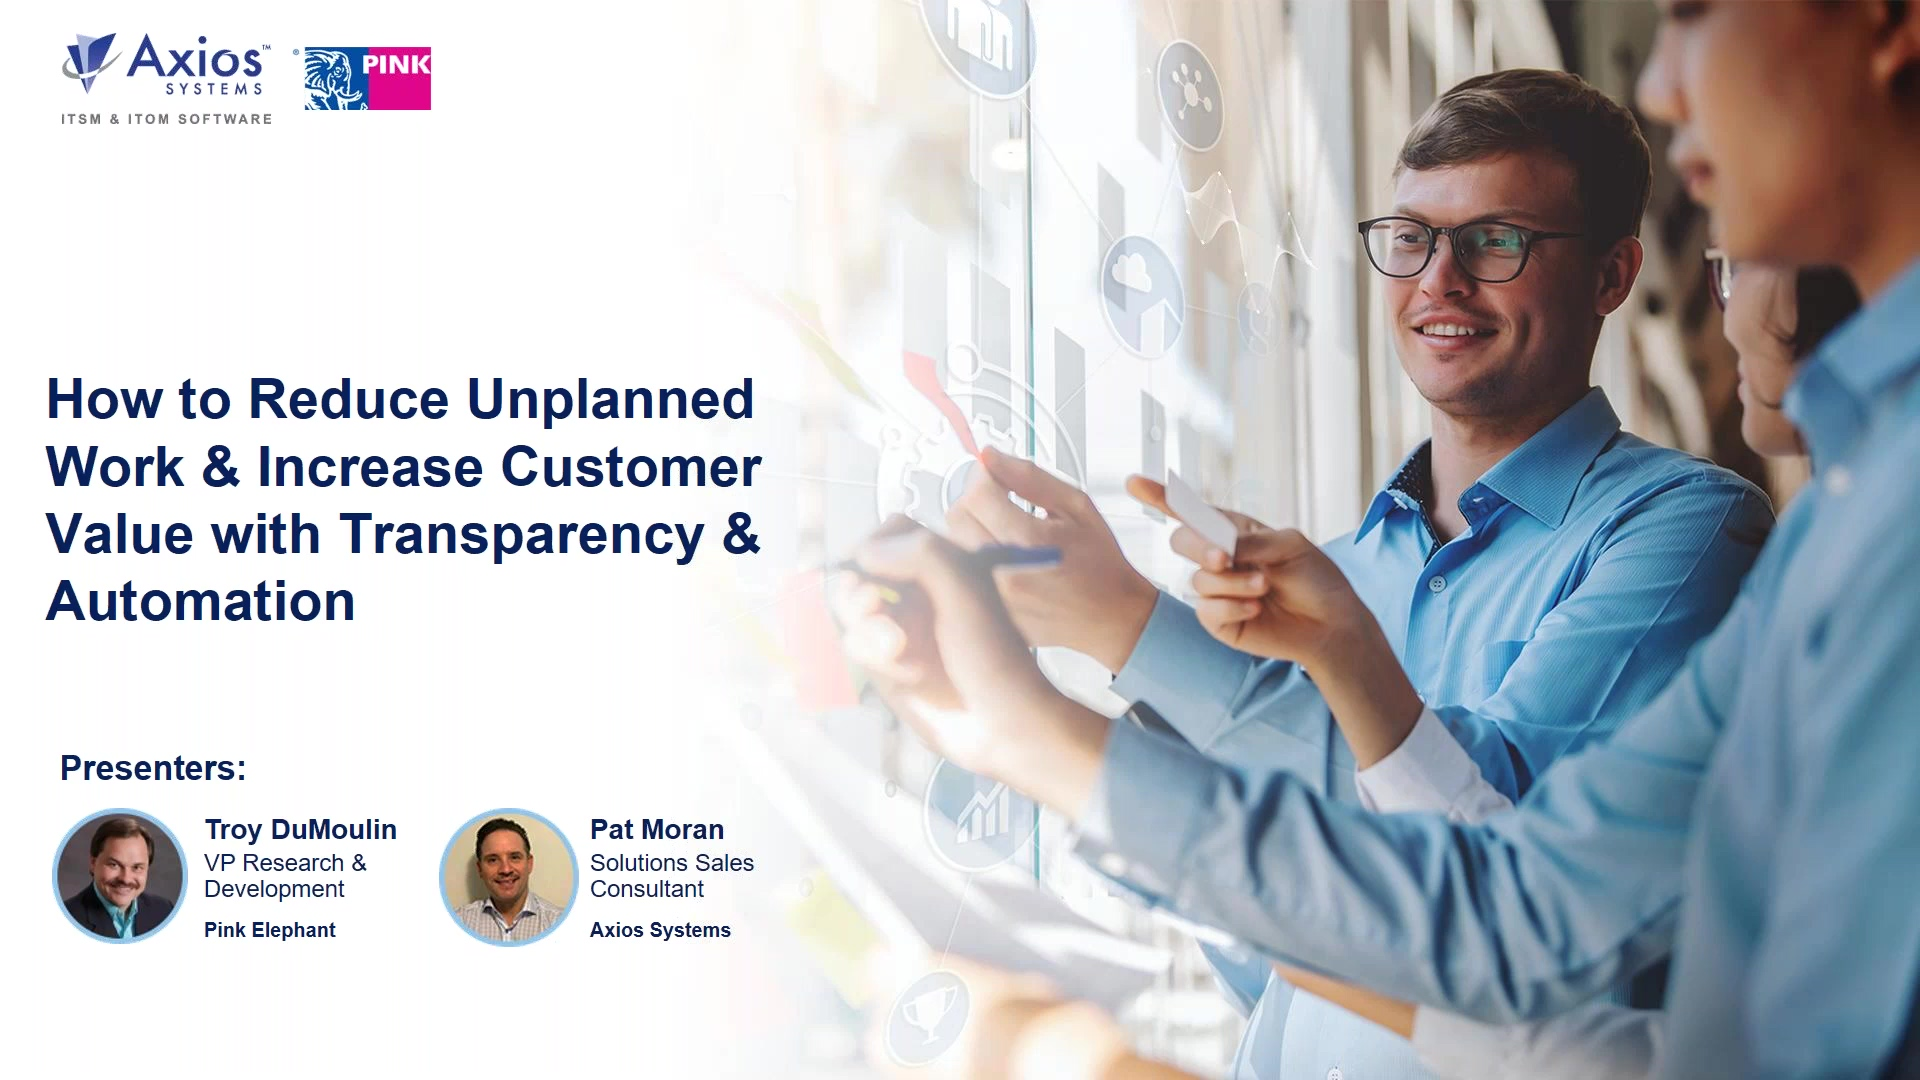 How to Reduce Unplanned Work & Increase Customer Value with Transparency & Automation